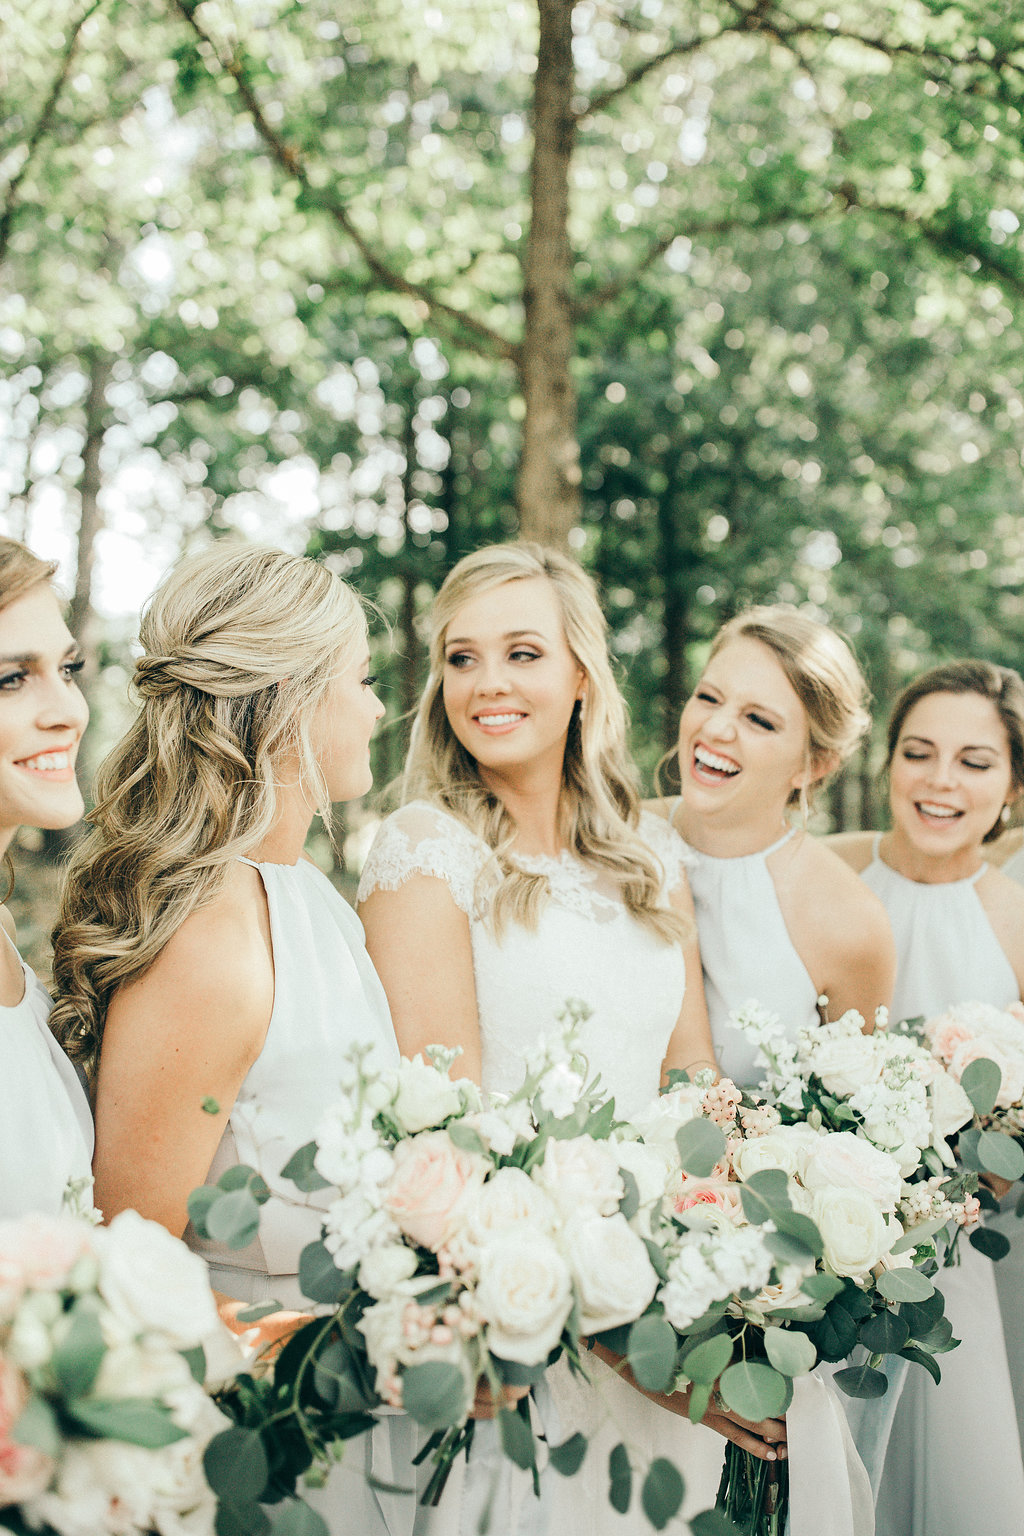 Auburn Al bride and bridesmaids